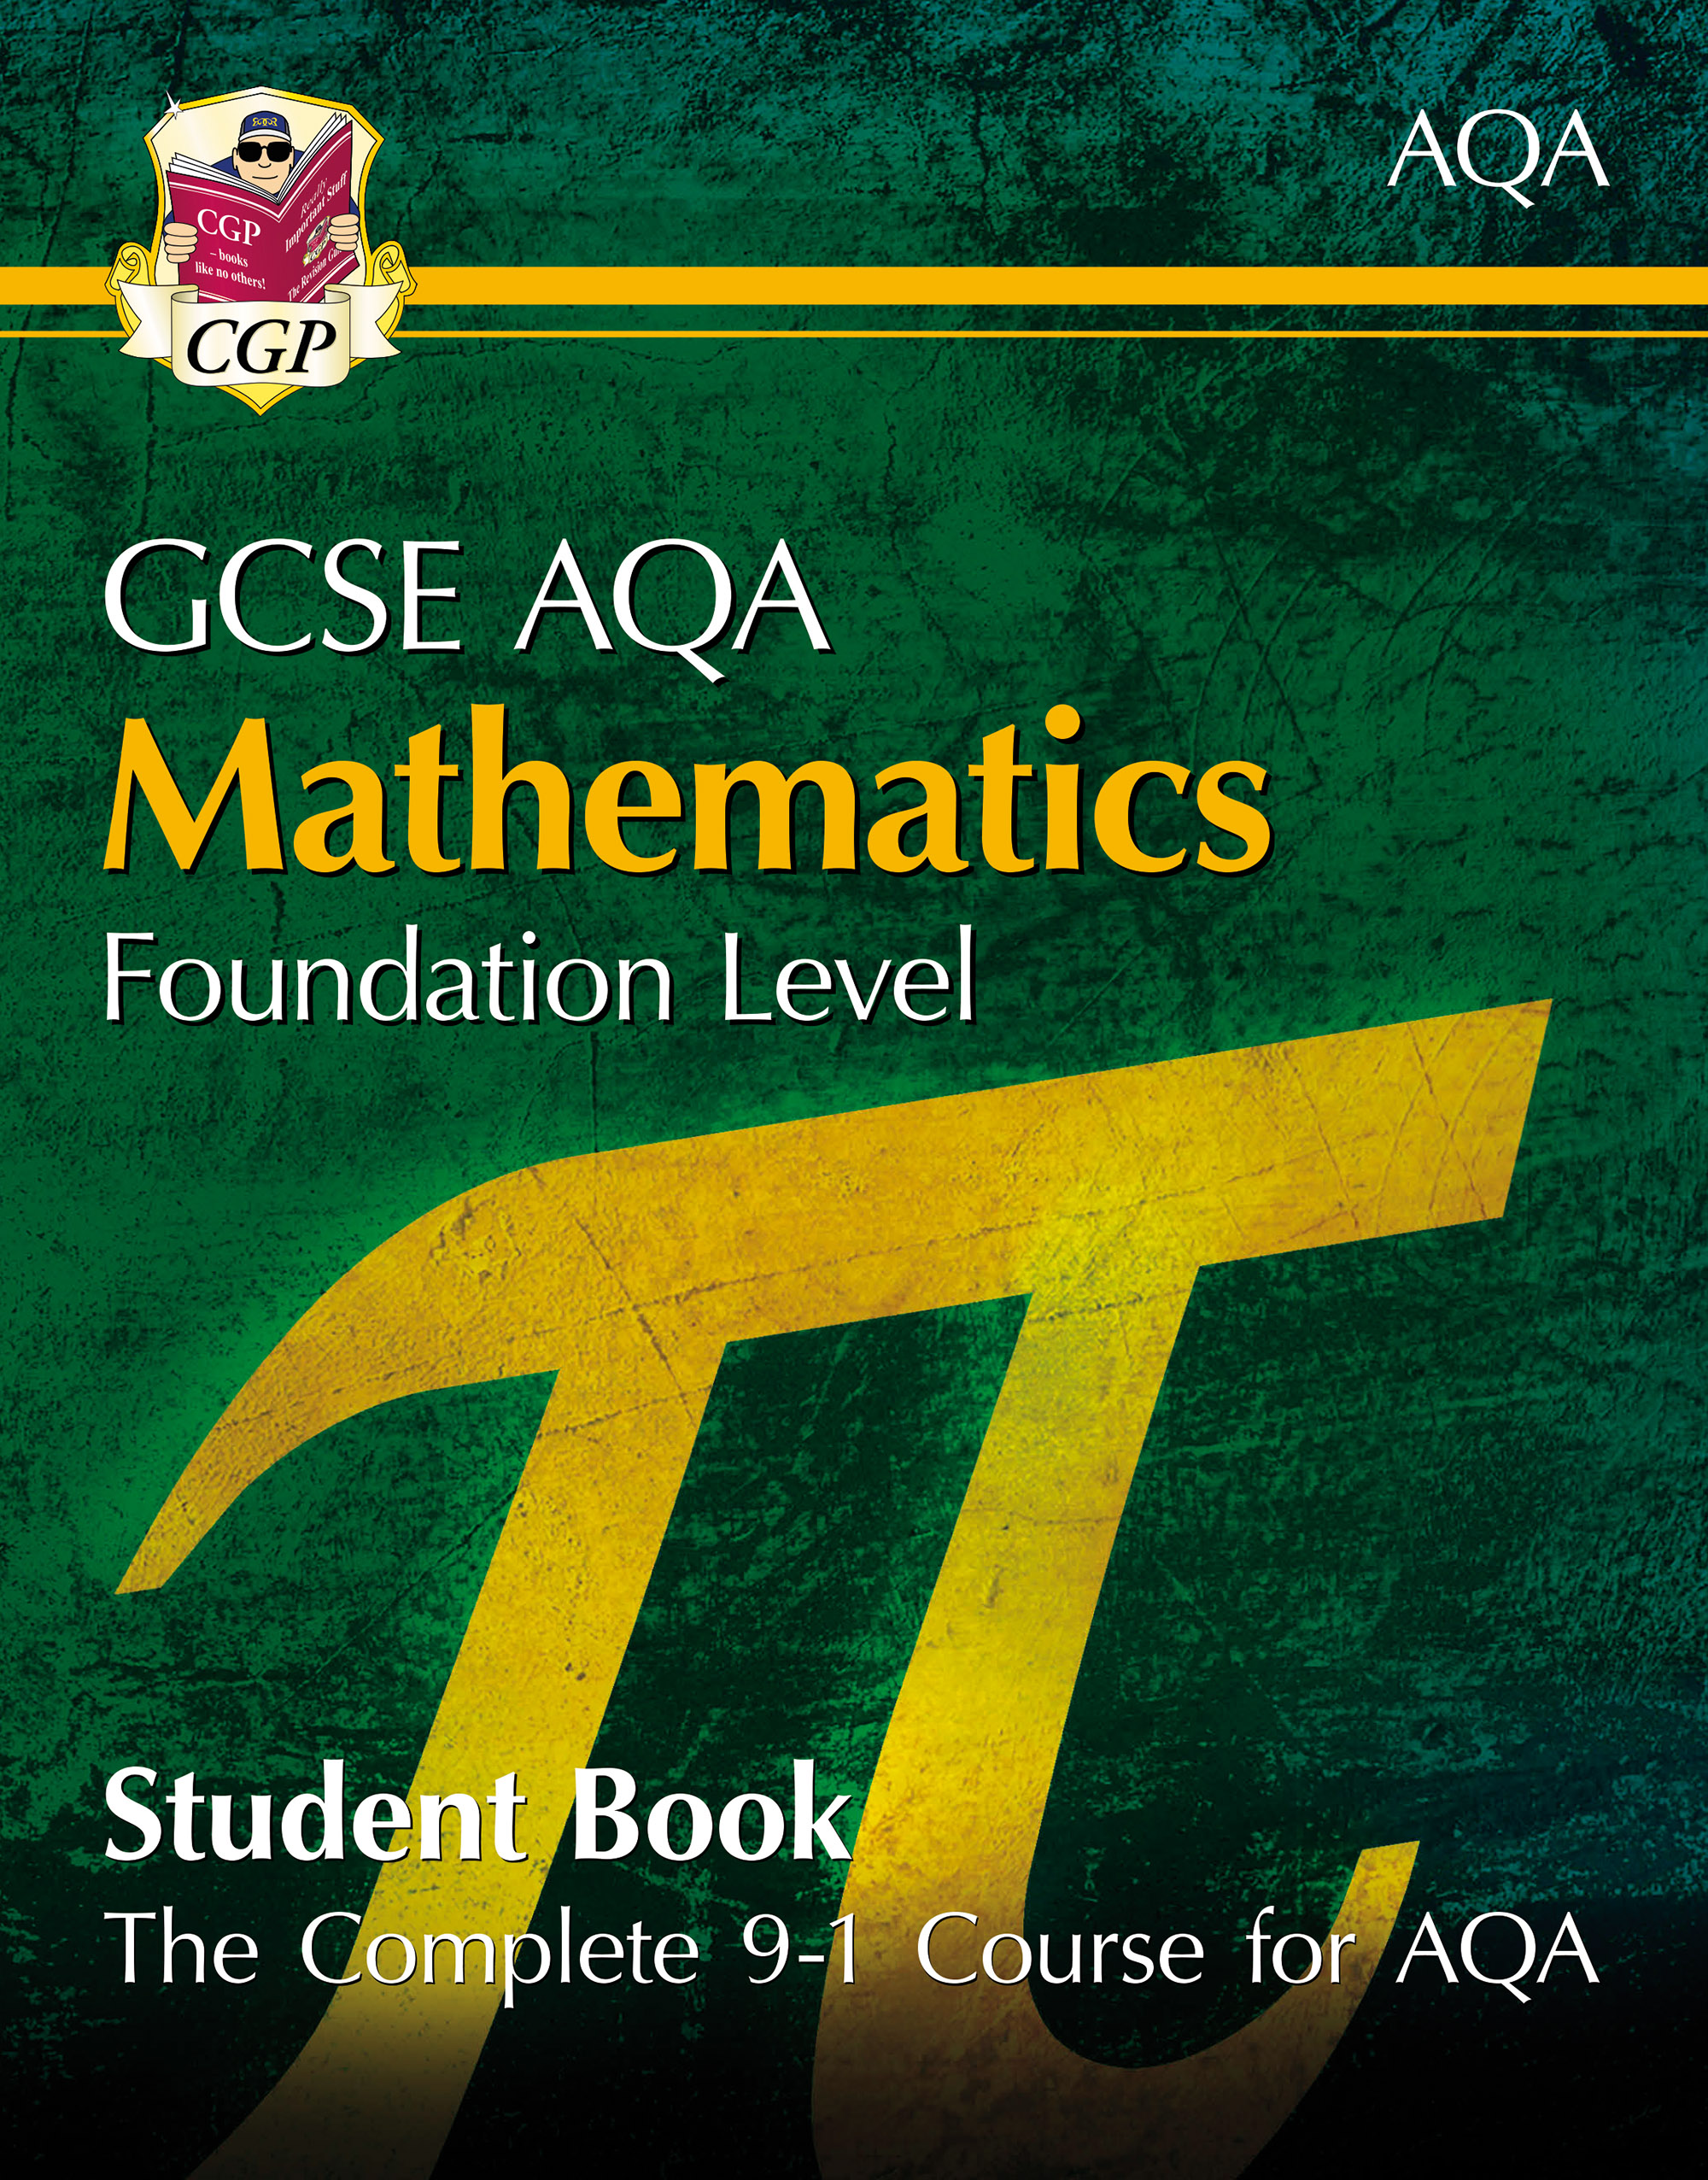 MQFT41DK - New Grade 9-1 GCSE Maths AQA Student Book - Foundation